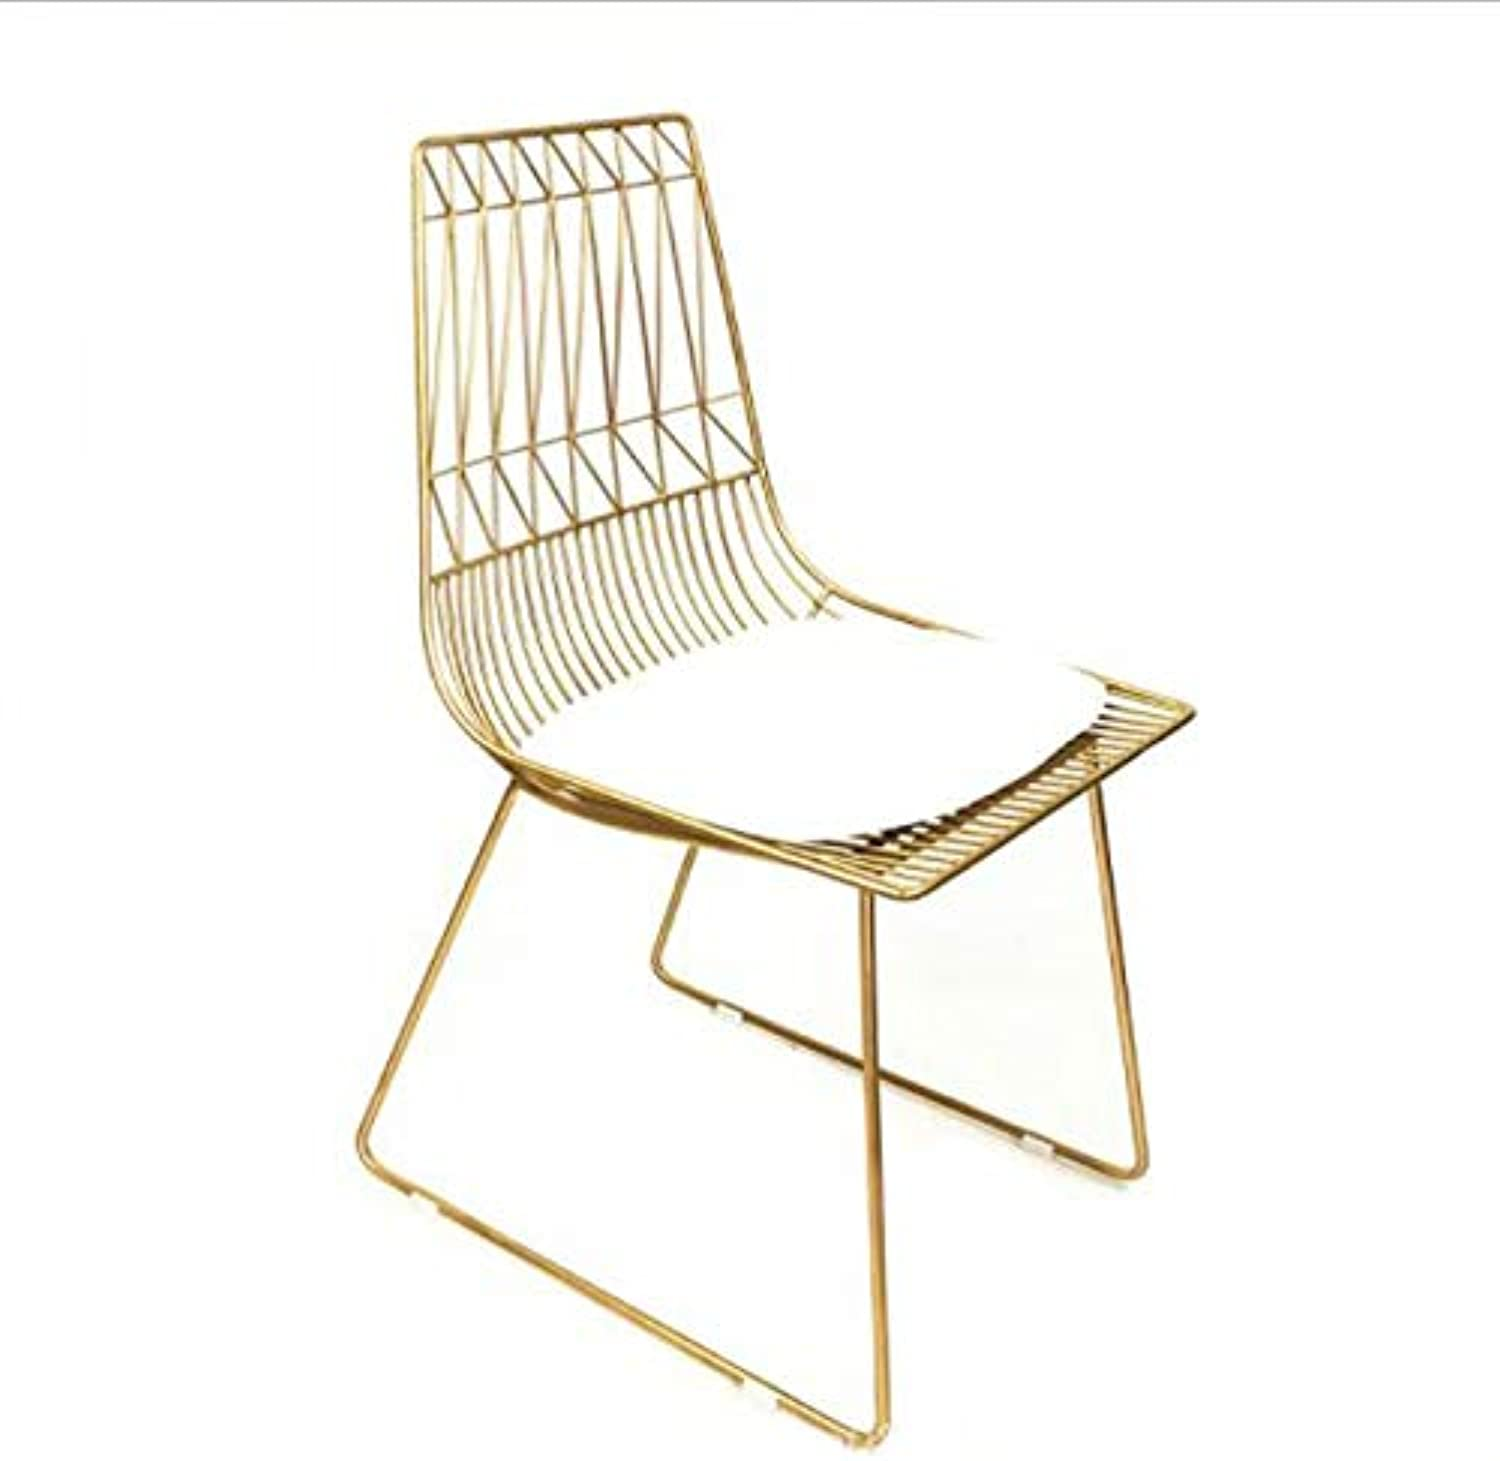 Bar stools High Stool Simple Casual Coffee Beauty Salon Makeup Chair Black, gold, Size  85cm Height Chair (color   gold)